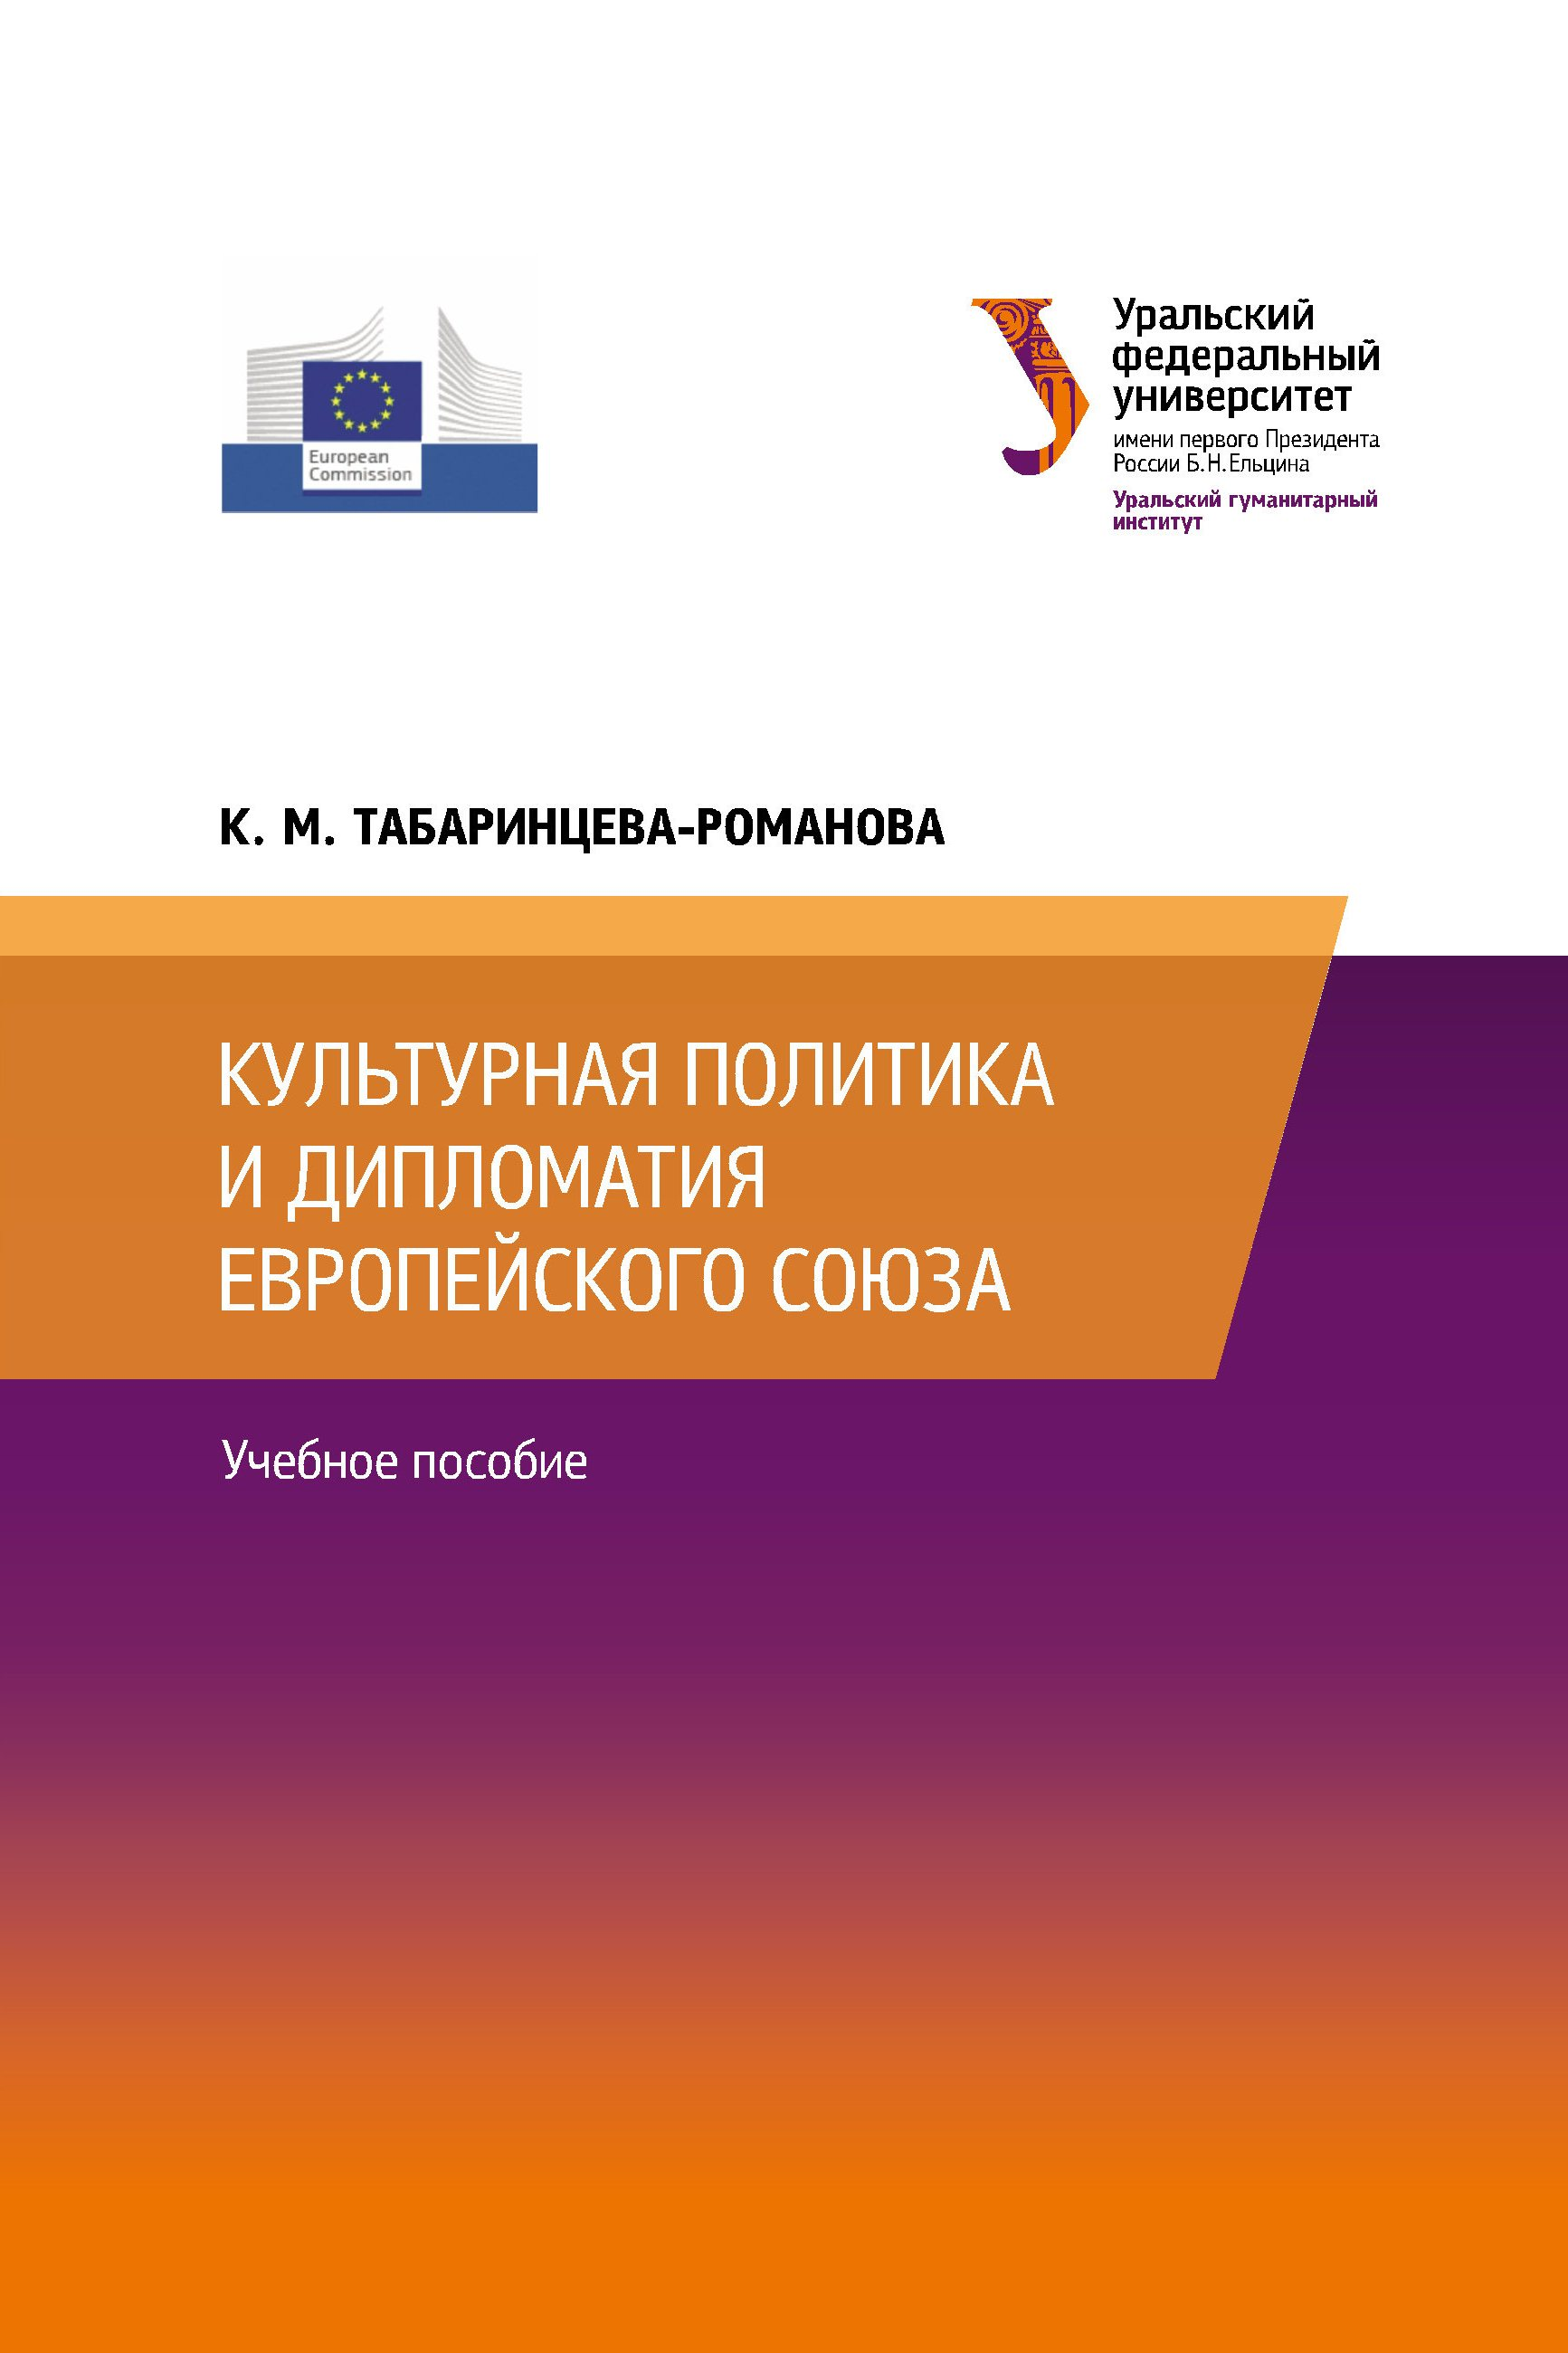 KSENIA TABARINTSEVA-ROMANOVA. THE TEXTBOOK ''CULTURAL POLICY AND DIPLOMACY OG THE EUROPEAN UNION''